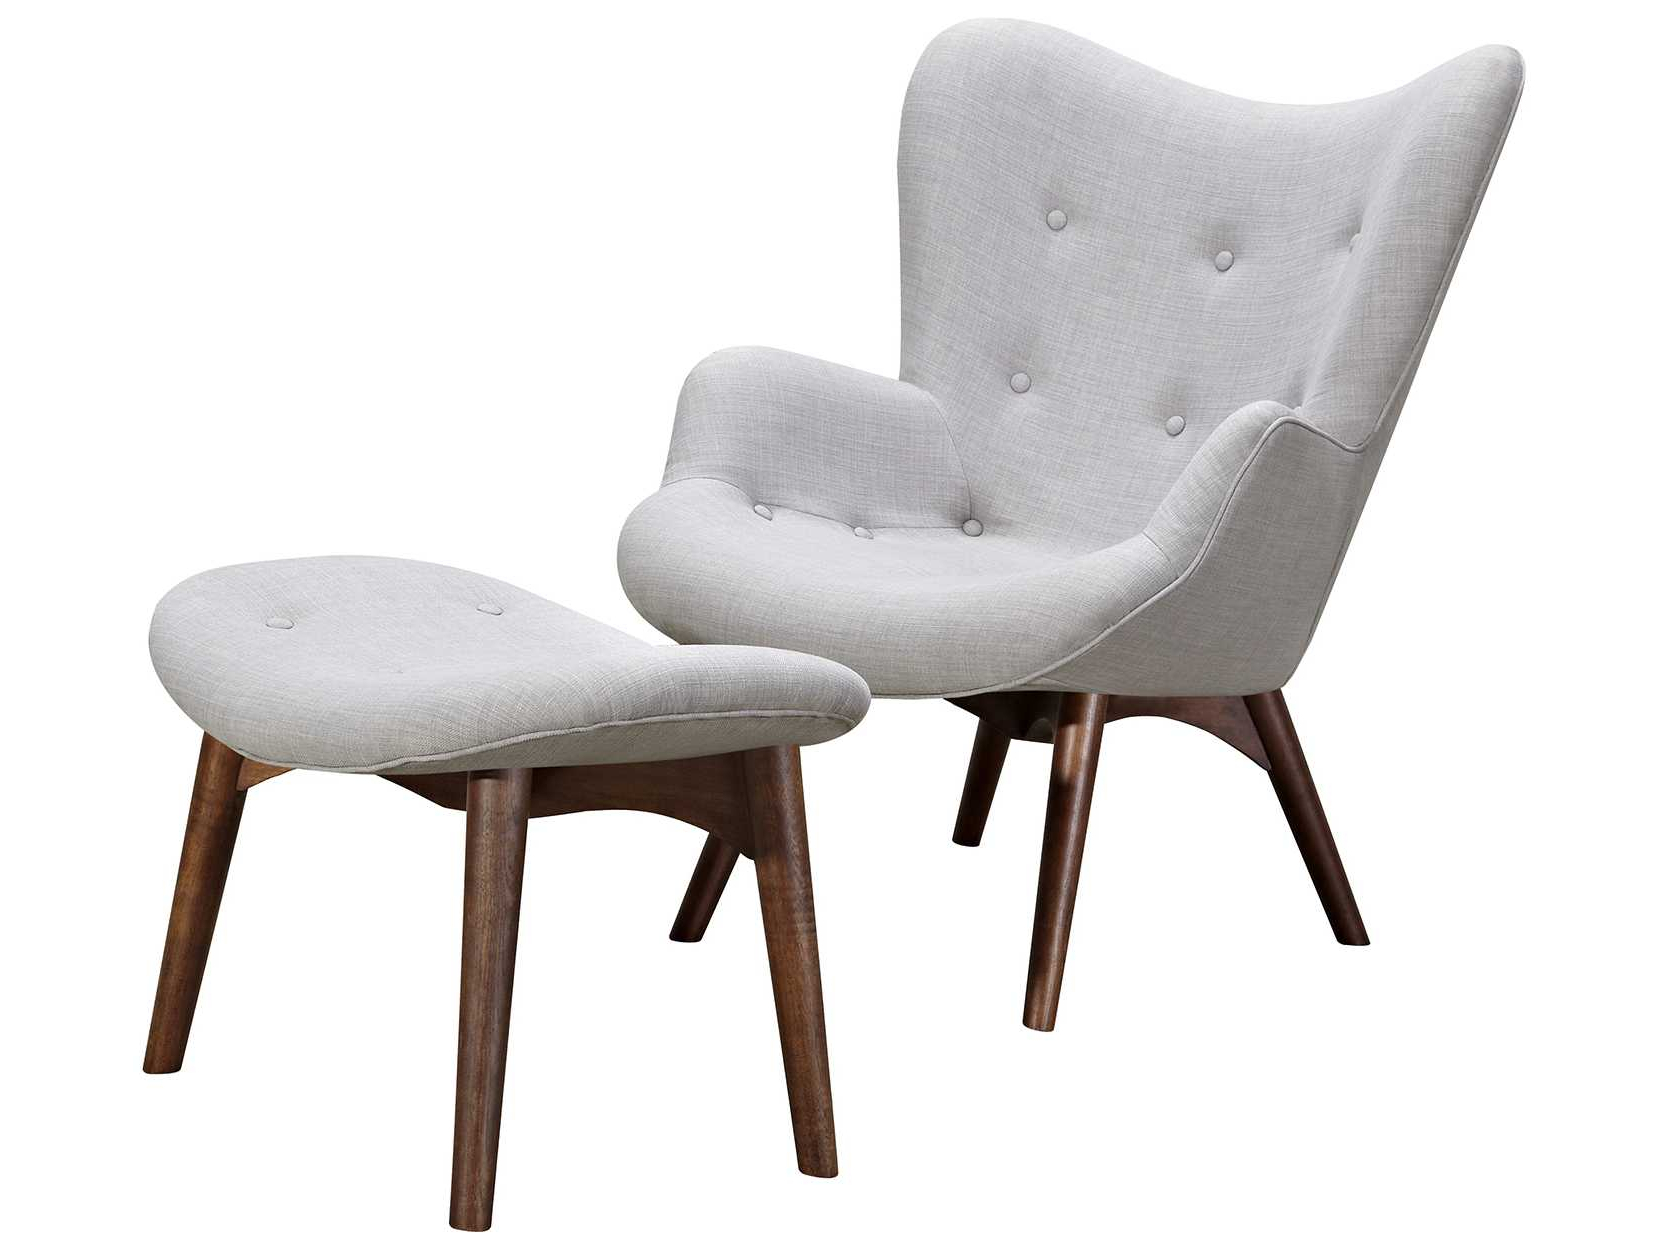 2018 Aidan Ii Swivel Accent Chairs Throughout Nyekoncept Aiden Glacier White Accent Chair & Ottoman With Walnut (Gallery 5 of 20)